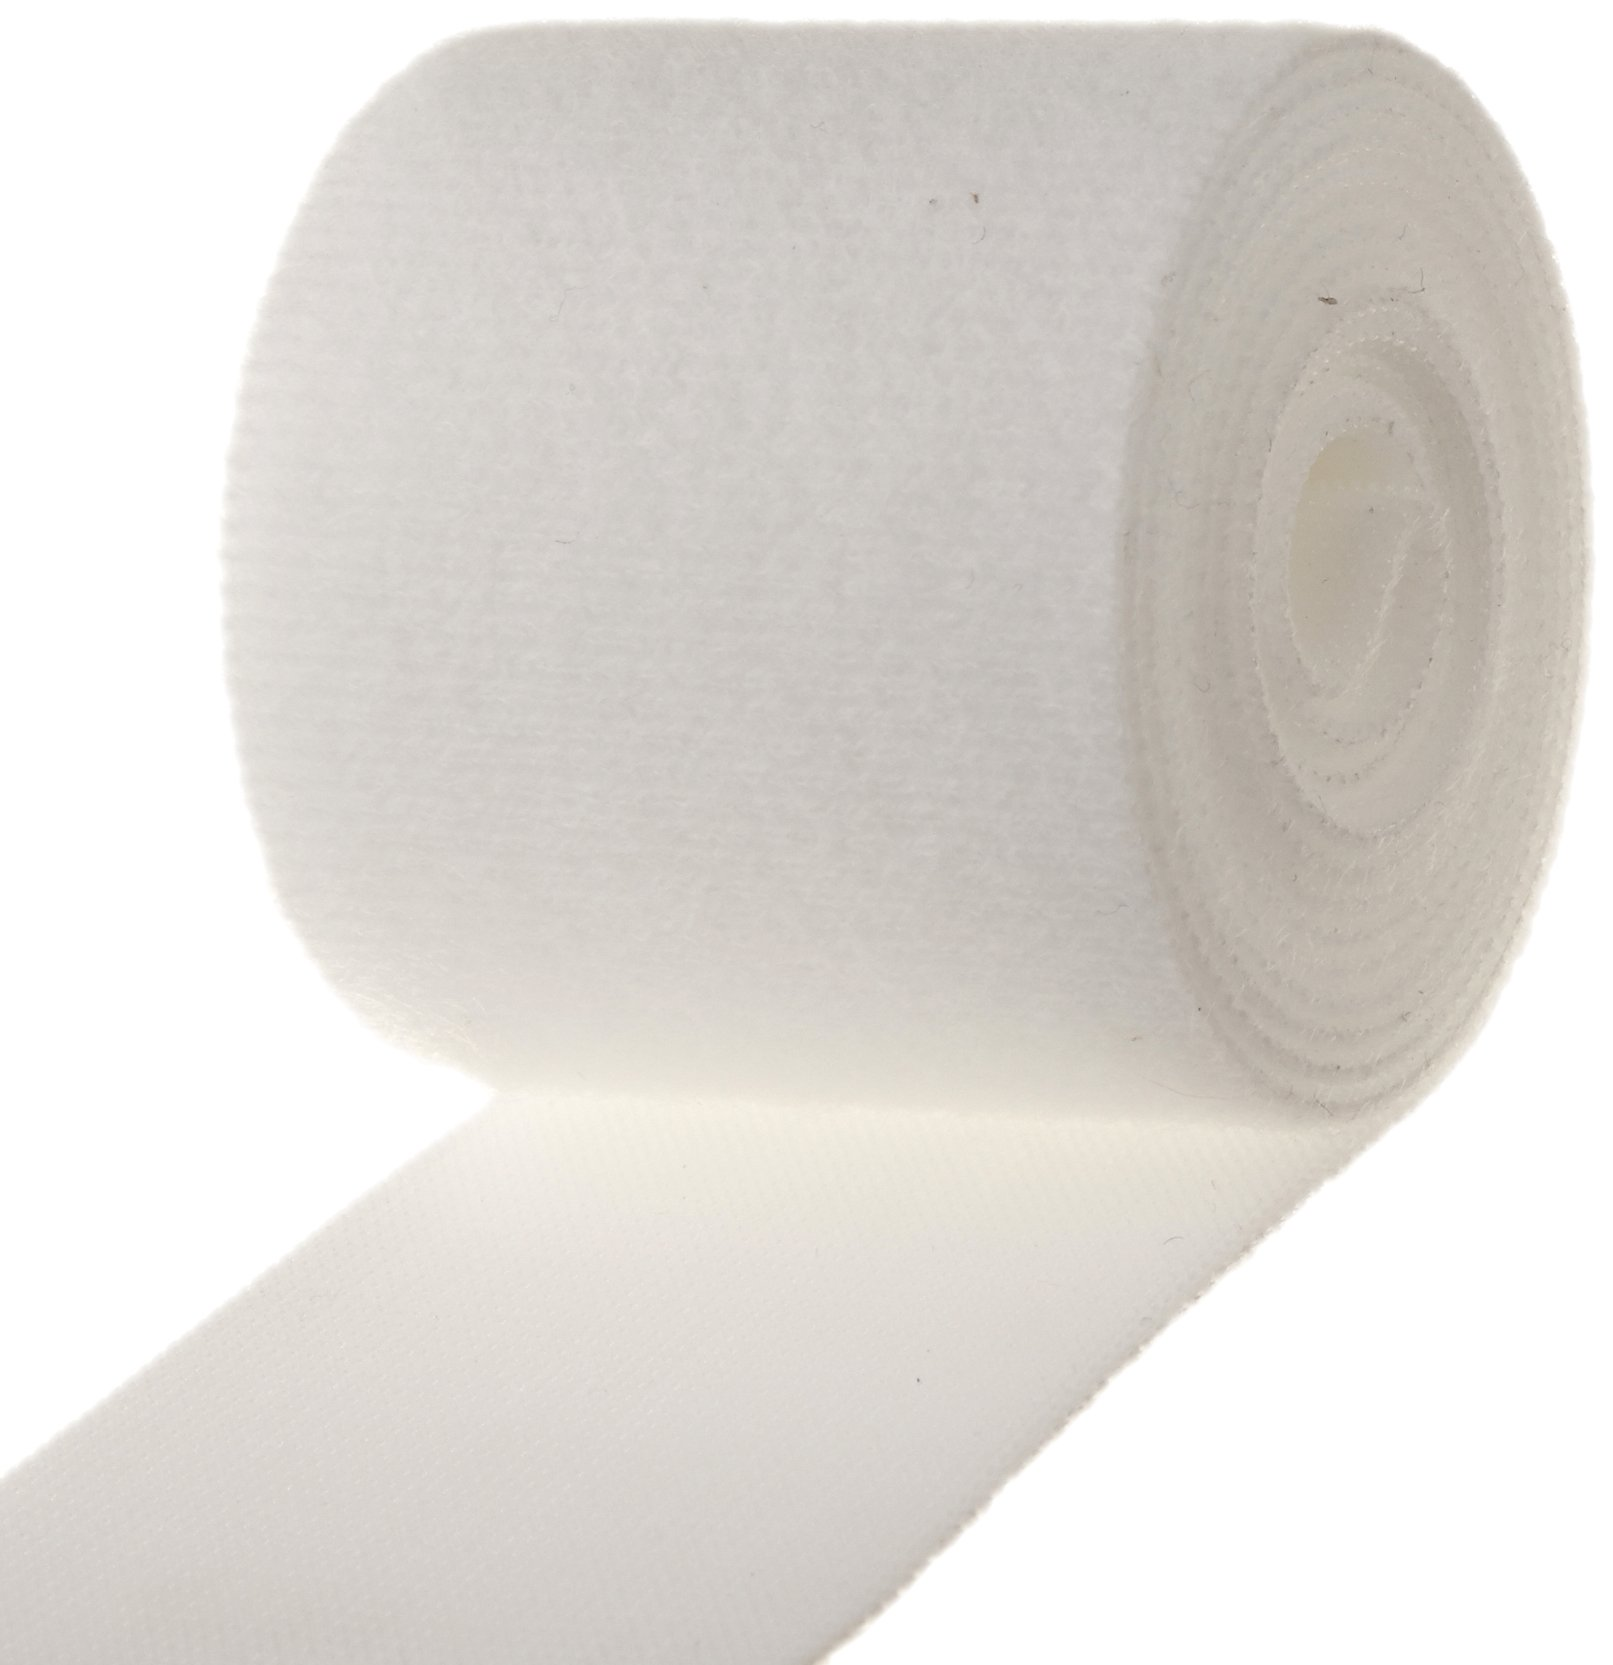 VELCRO White Nylon Velcro Onewrap Strap, Hook and Loop, 2'' Wide, 5' Length by Velcro